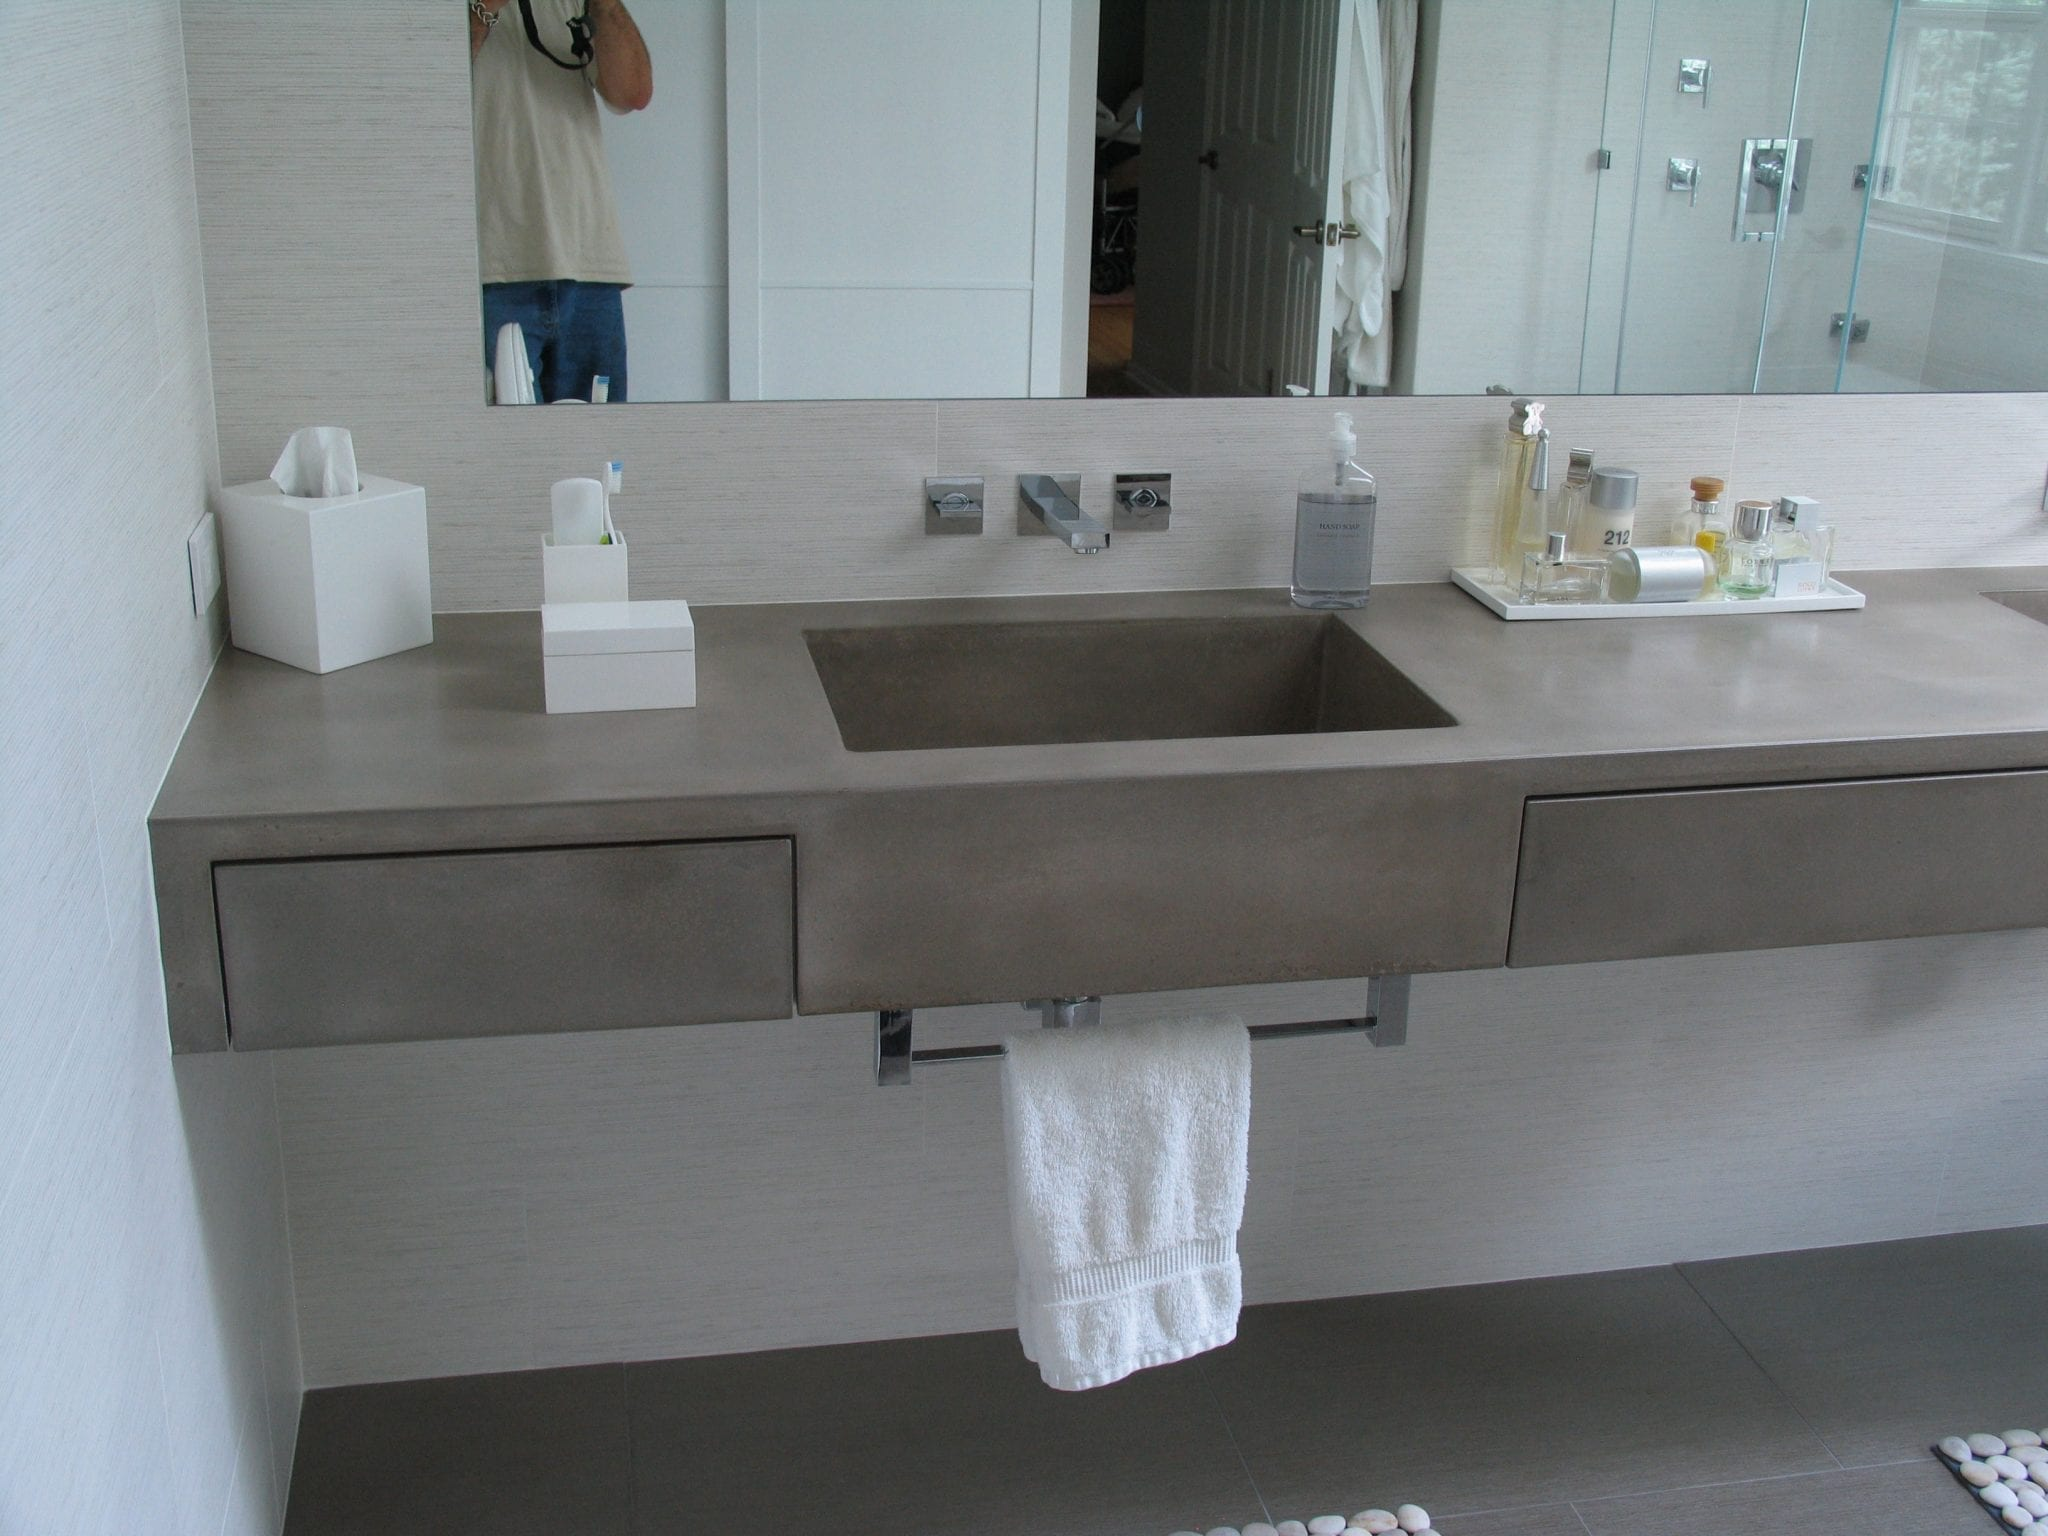 Gfrc Wall Panels Amp Countertop Concrete Bathroom Makeover